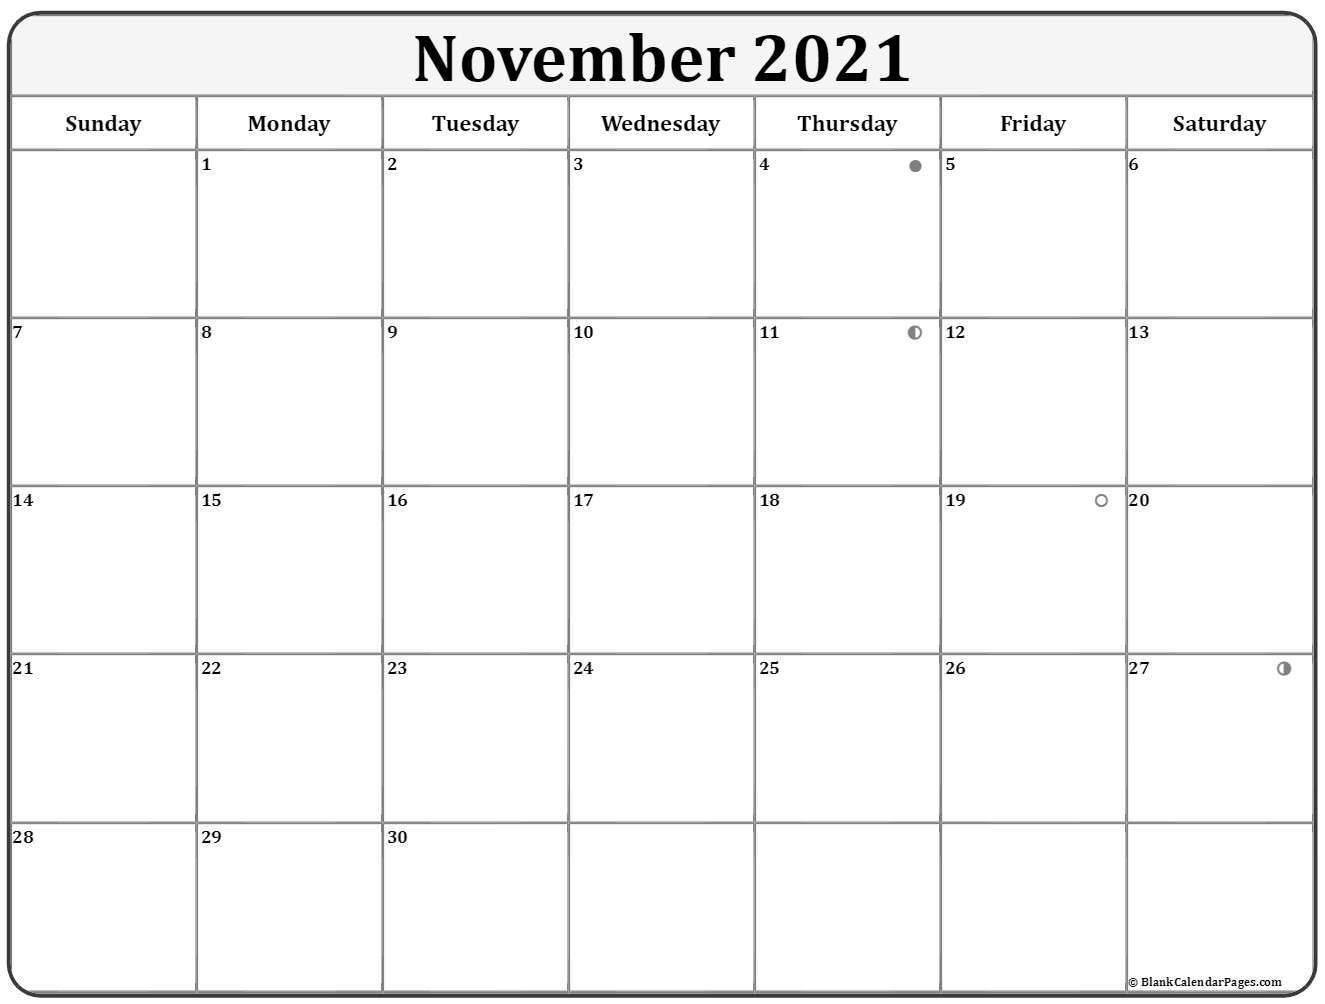 November 2021 moon phase calendar. lunar calendar